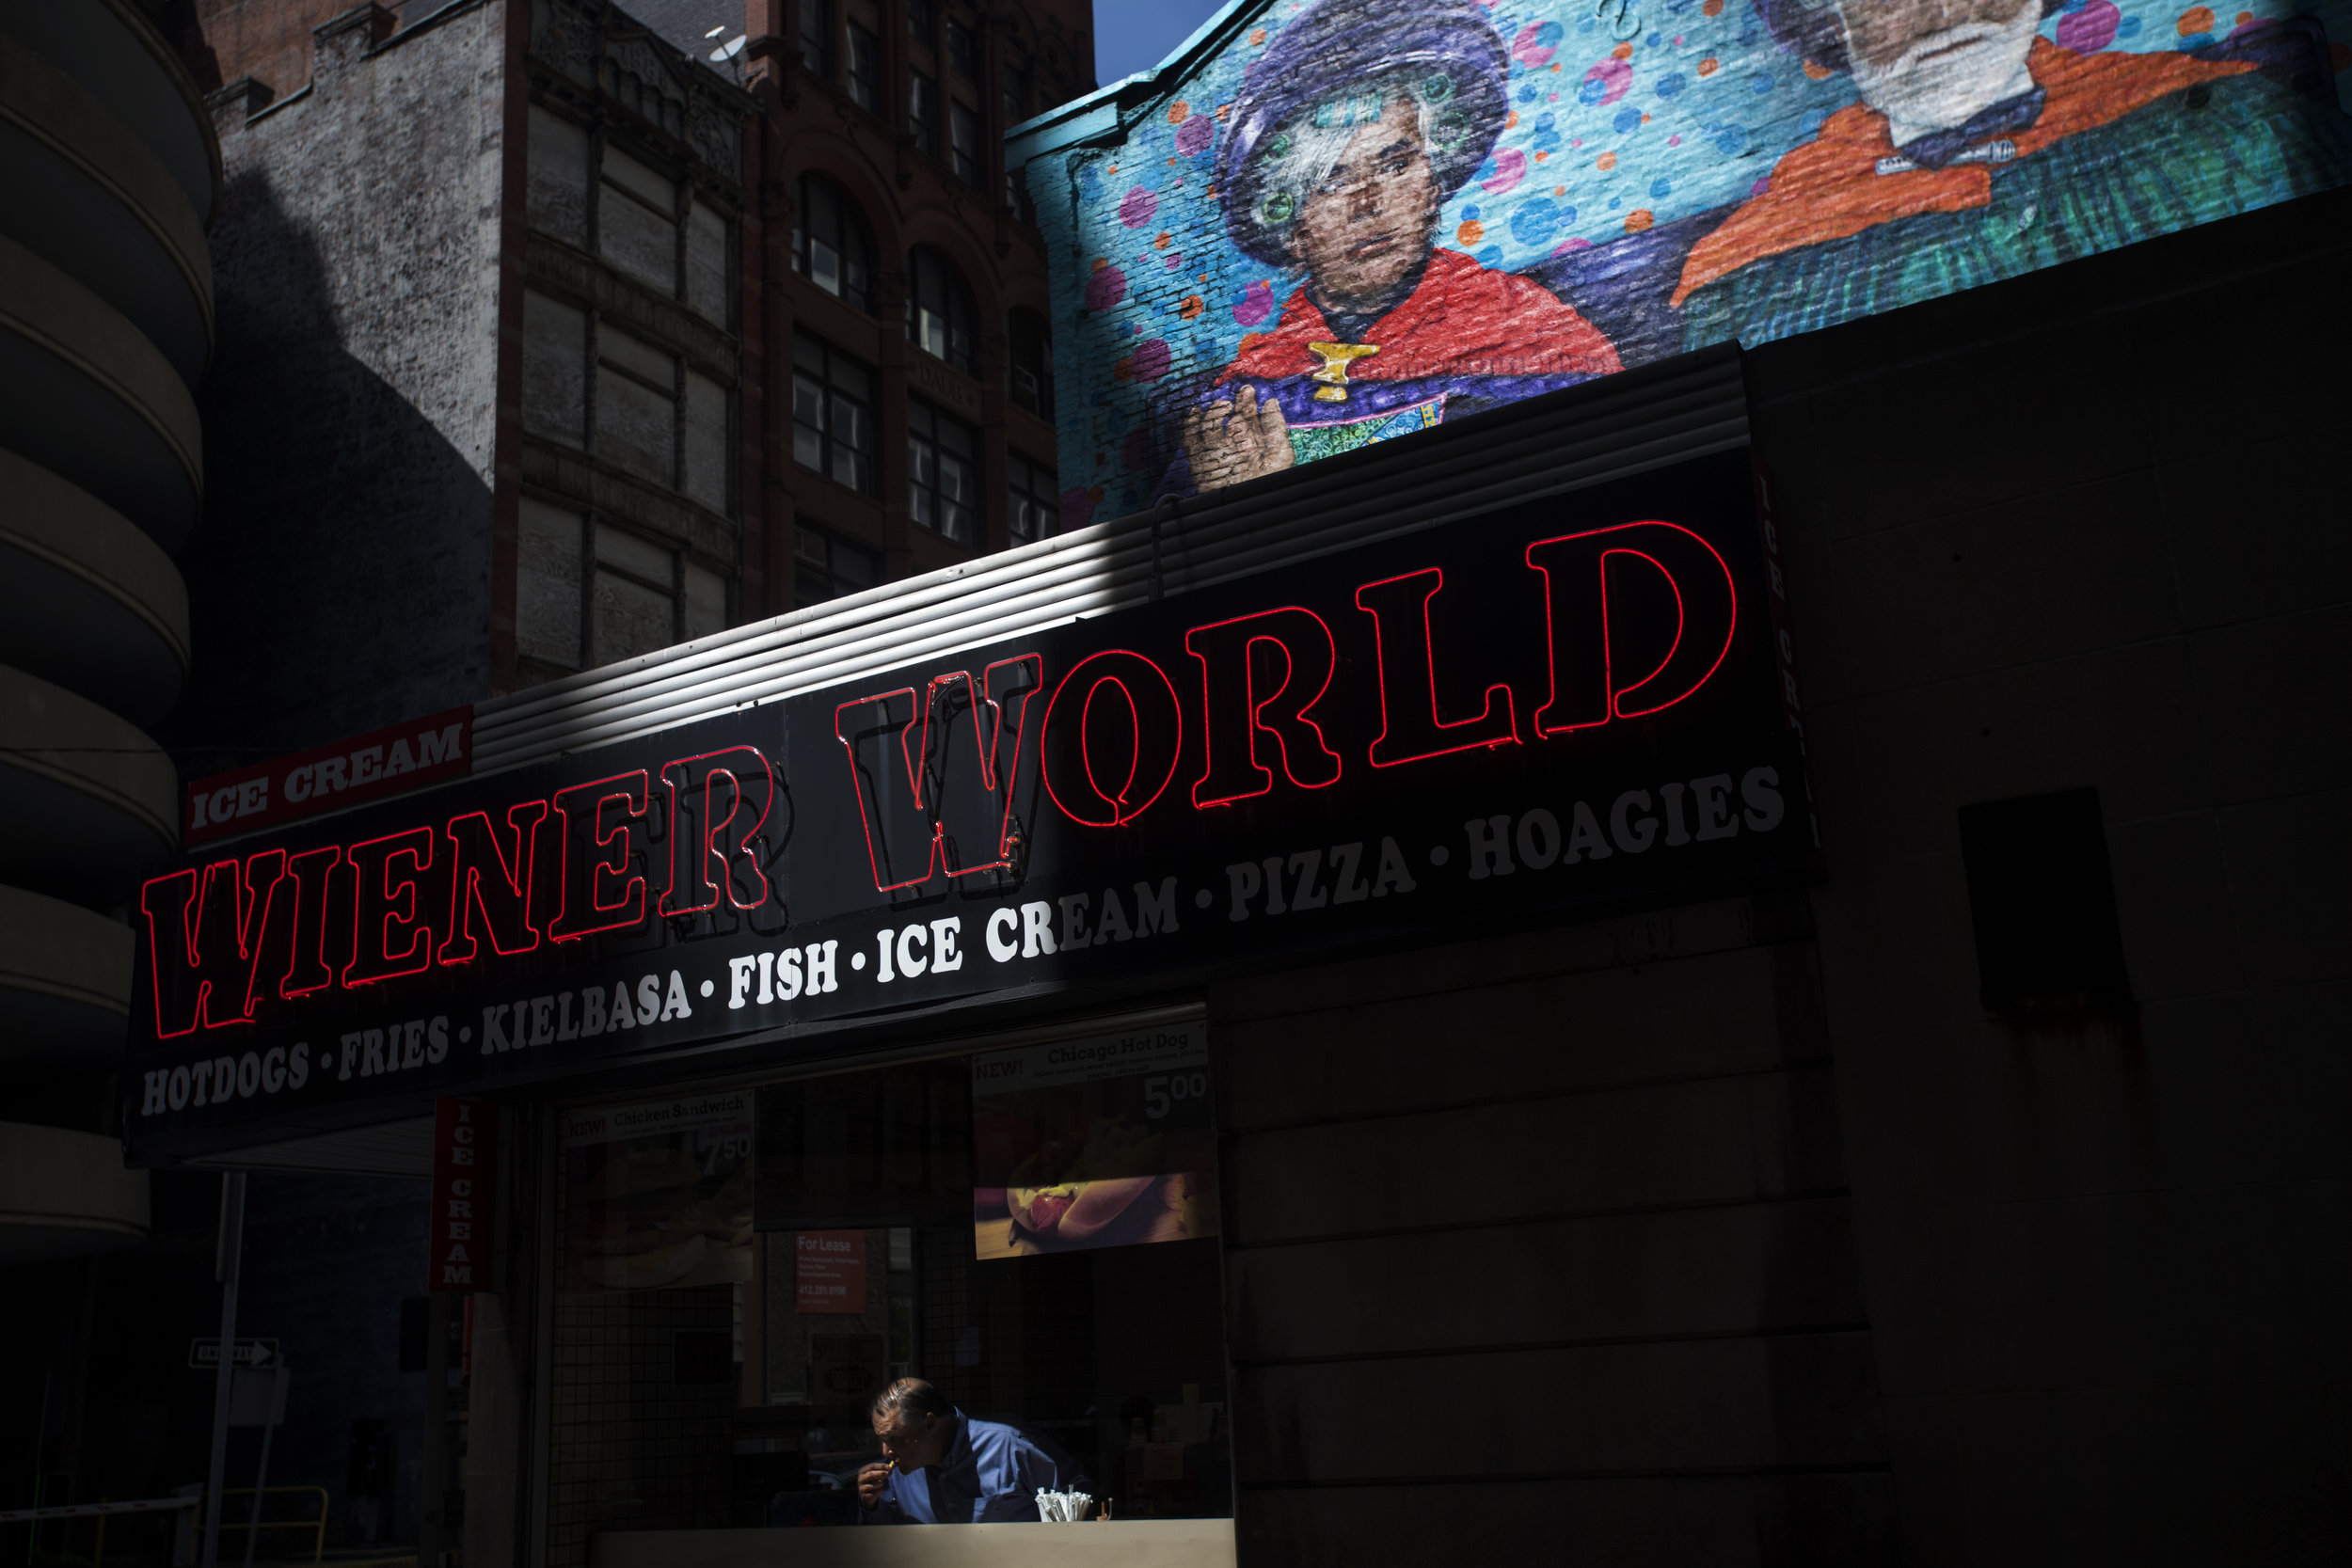 Sunlight shines on a patron eating inside Wiener World on Wednesday, April 26, 2017 as seen from Strawberry Way downtown. (Steph Chambers/Post-Gazette)